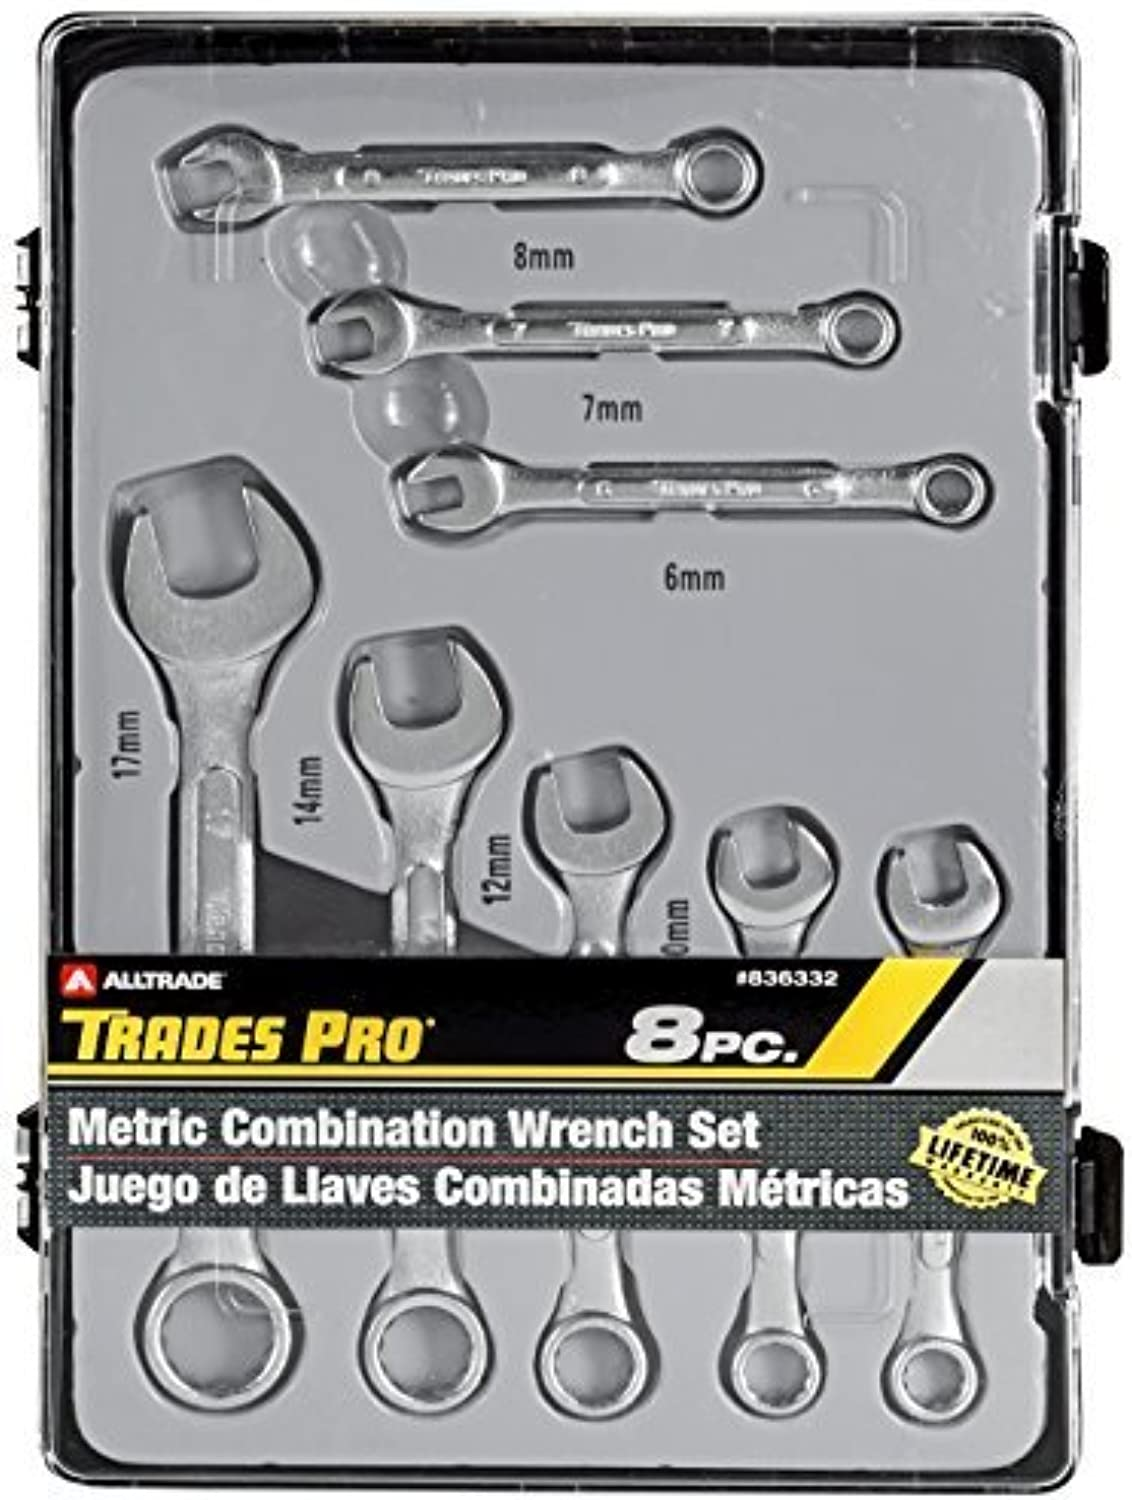 Tradespro 836332 Metric Combination Wrench Wrench Wrench Set, 8-Piece by Tradespro B0186ME0YU | Genial